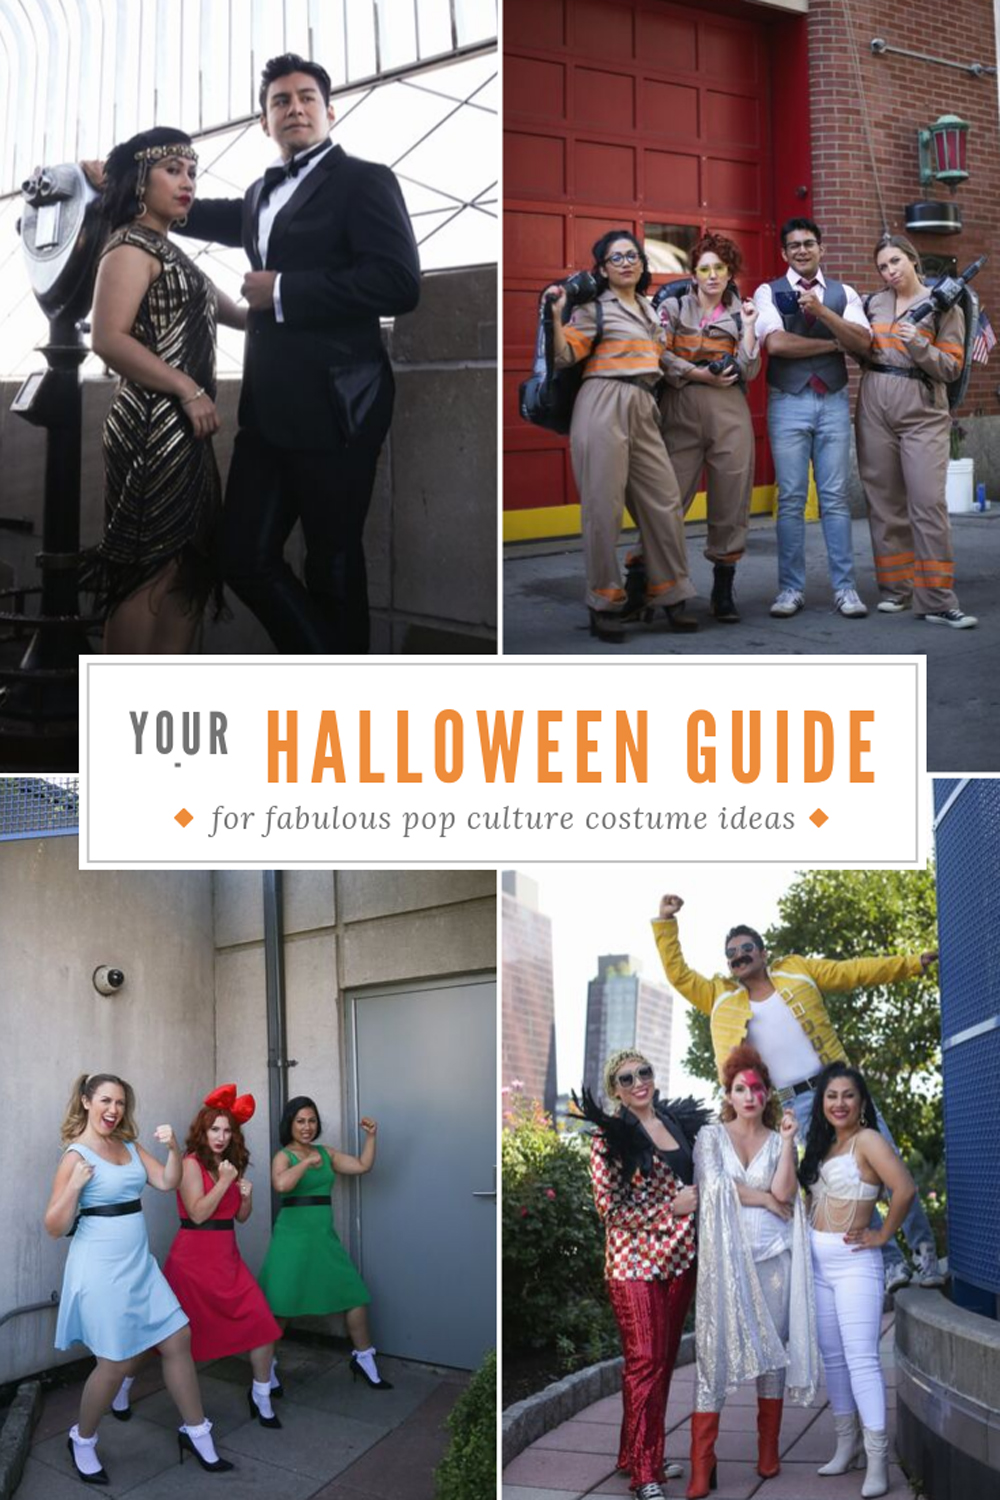 Fabulous Pop-Culture Halloween Costume Ideas, featuring roaring 20s, ghostbusters, powerpuff girls, and pop stars David Bowie, Freddie Mercury, Selena and Elton John